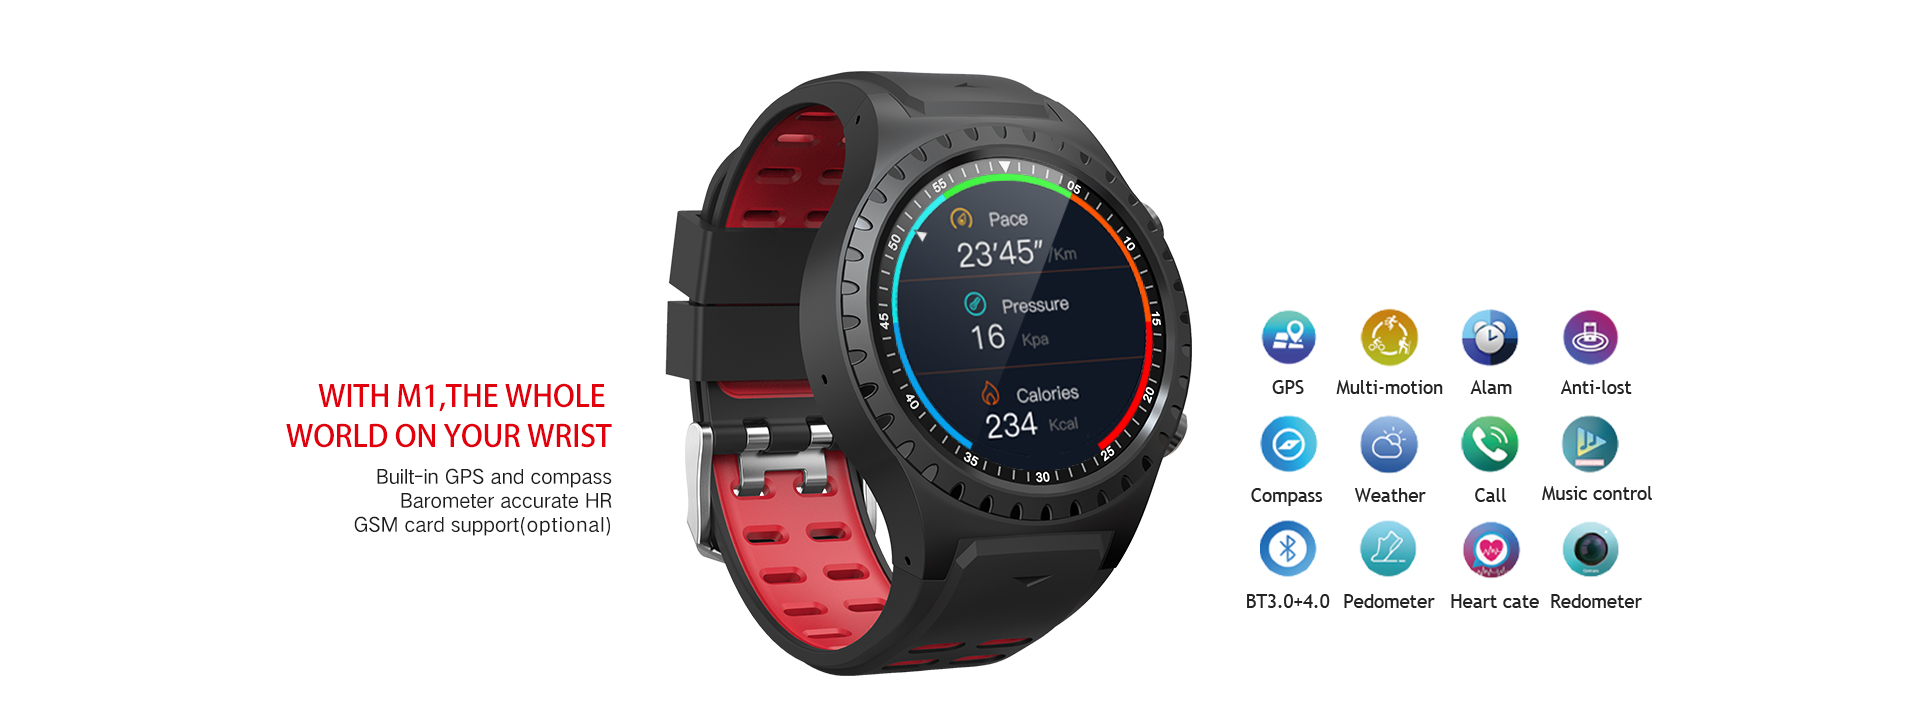 Smart watch with OTA  dynamic heart rate monitor and remote capture weather and message